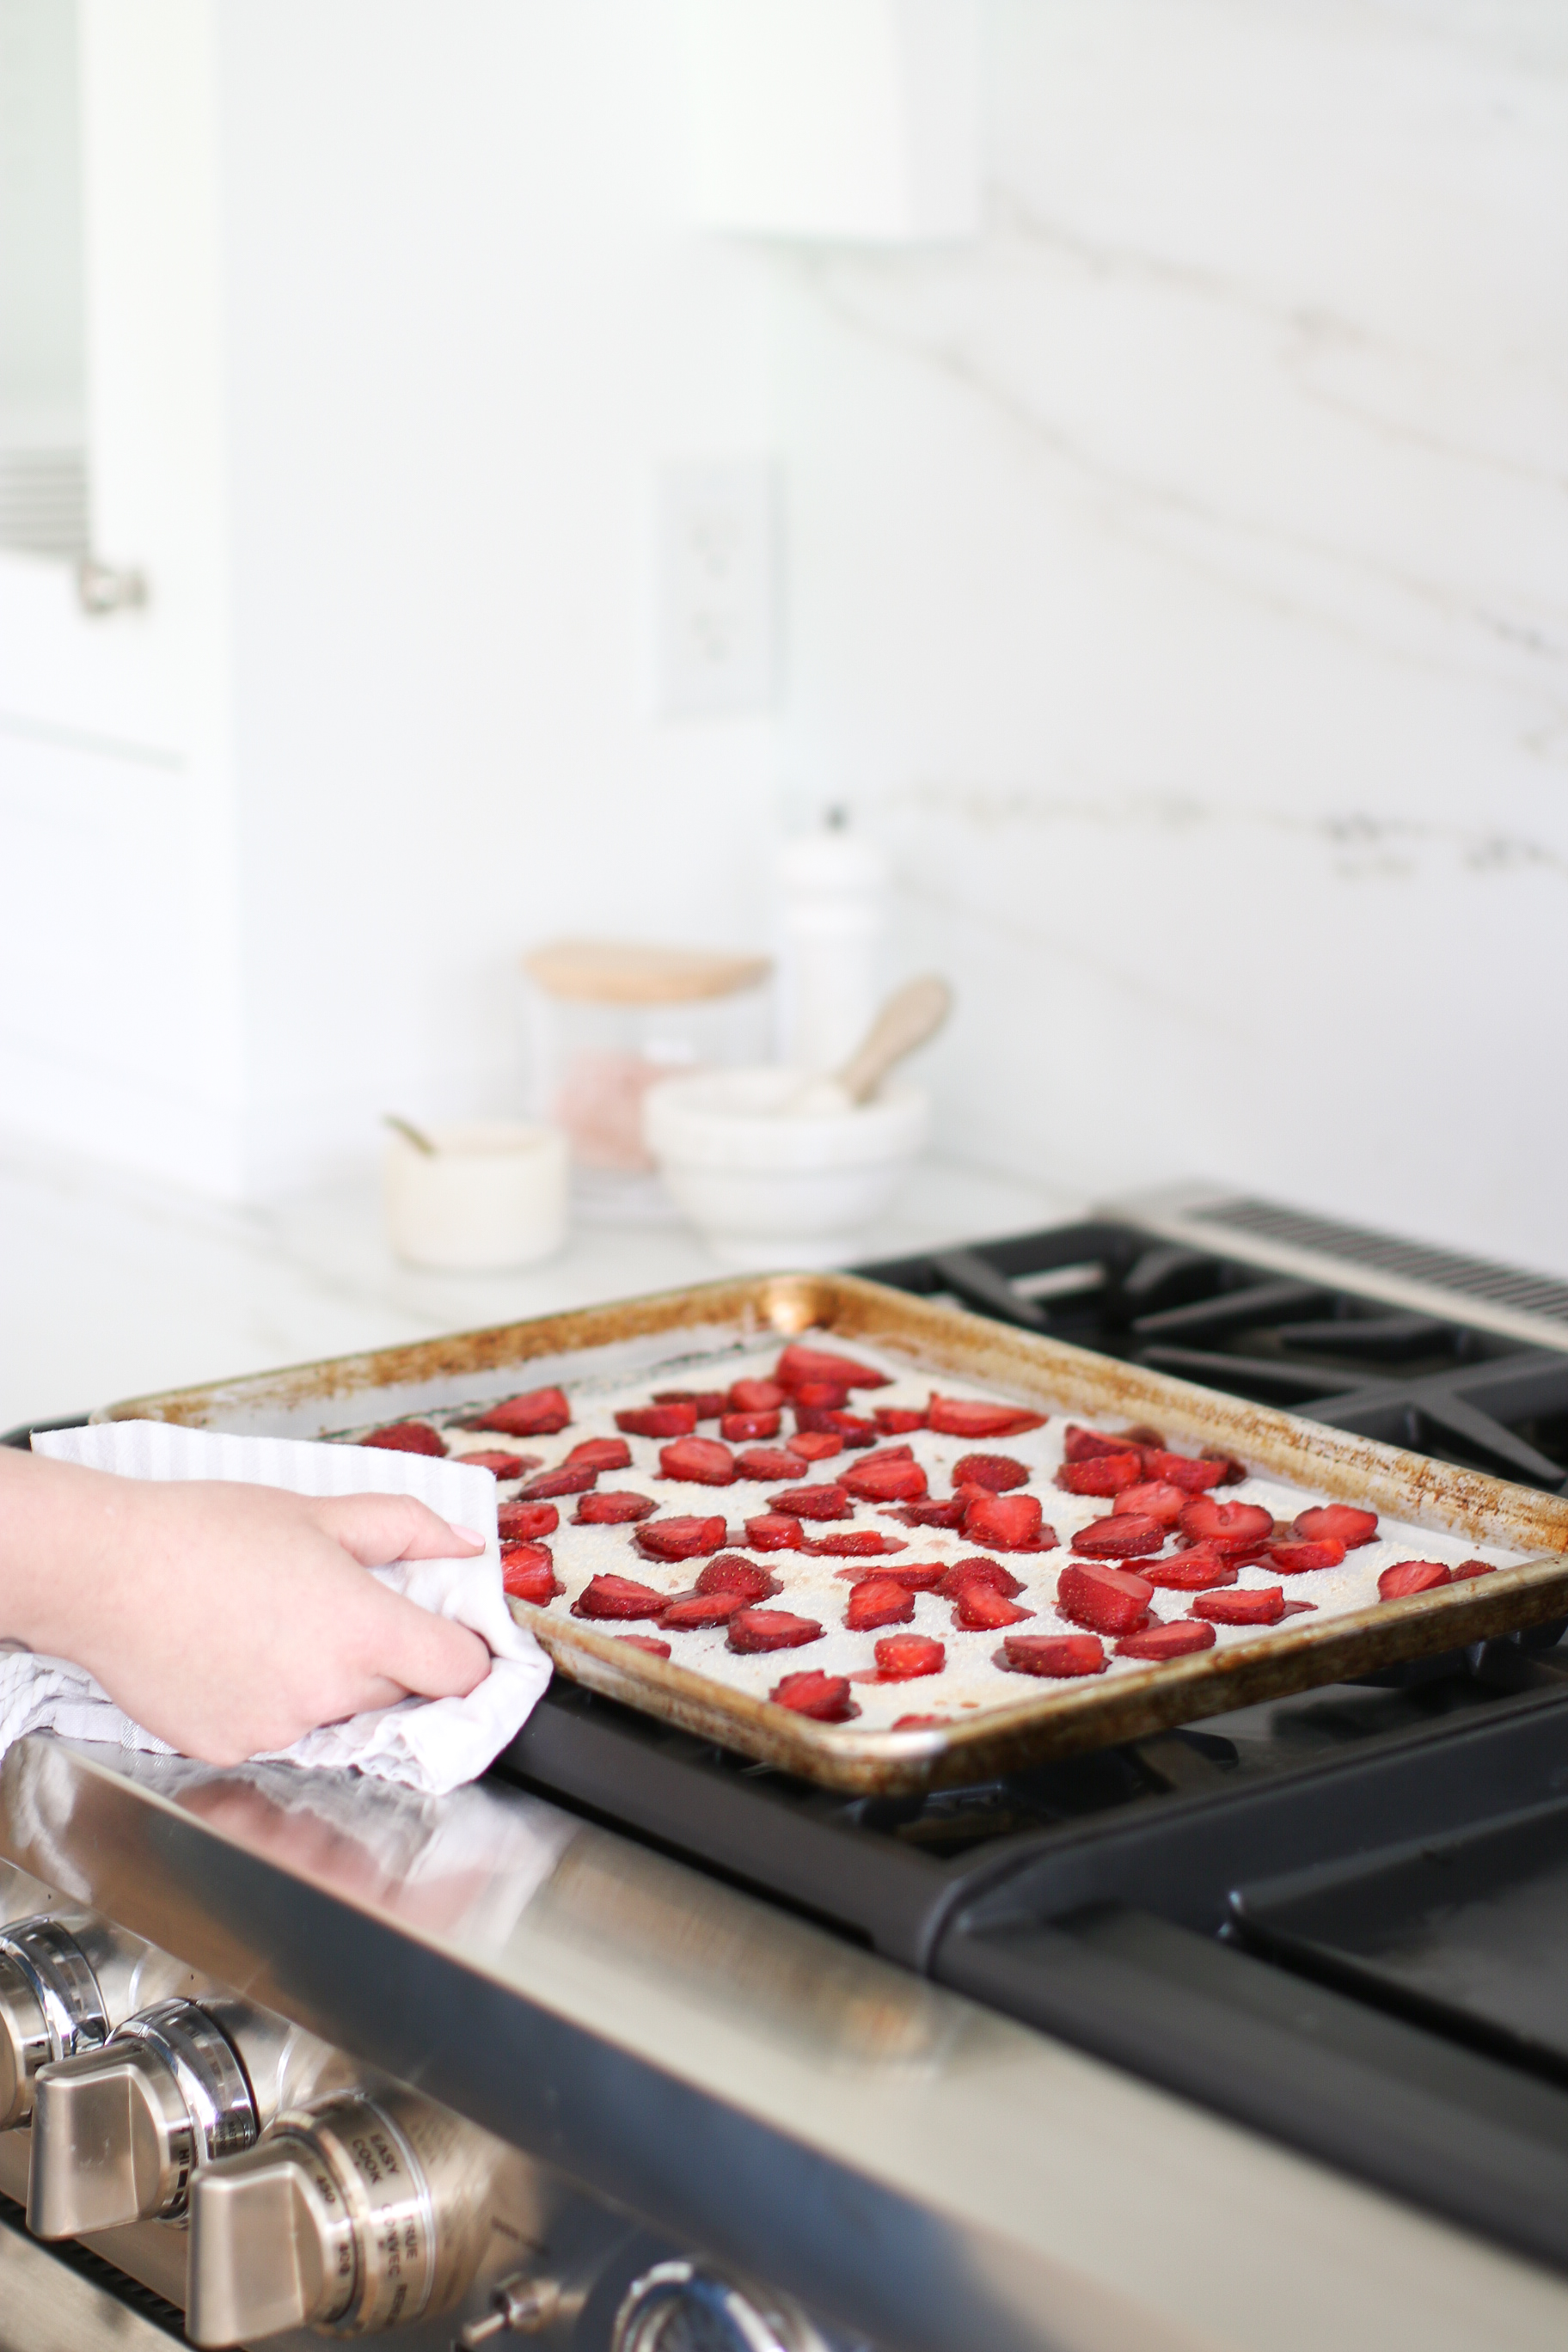 Roasted Strawberries Almond Milk DIY Recipe Monika Hibbs